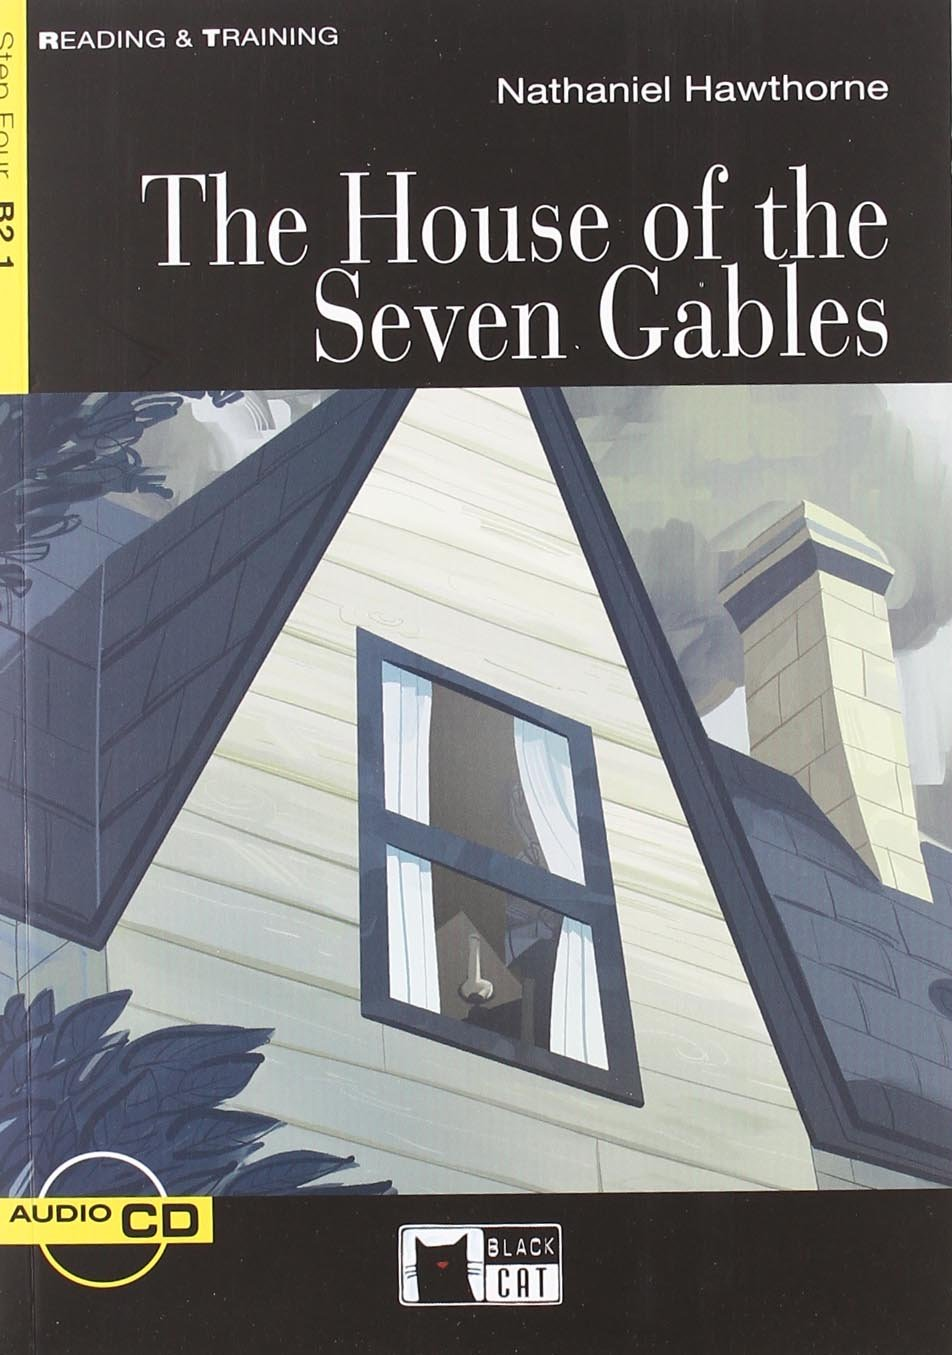 The house of the seven gables. Con CD Audio Reading and training ...